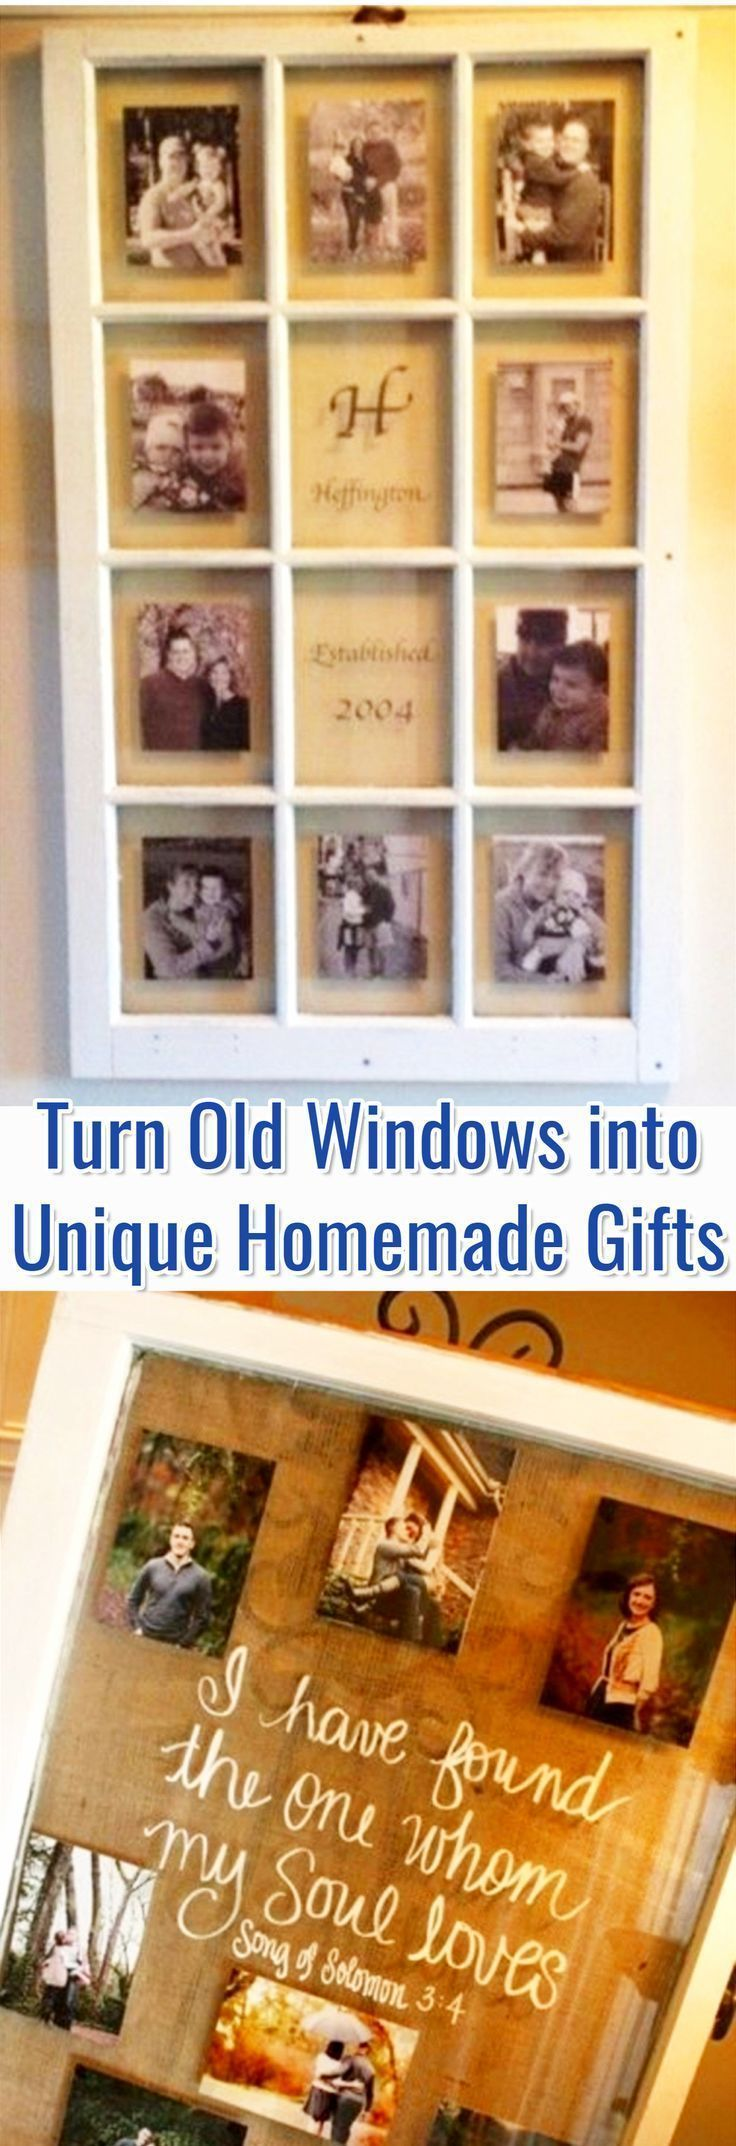 Turn Old Windows into Unique Homemade Gifts - Beautiful old window crafts for unique homemade gift ideas.  Love this idea to repurpose and upcycle old window frames into pictures and DIY wall decorations #HomemadeHouseDecorations,